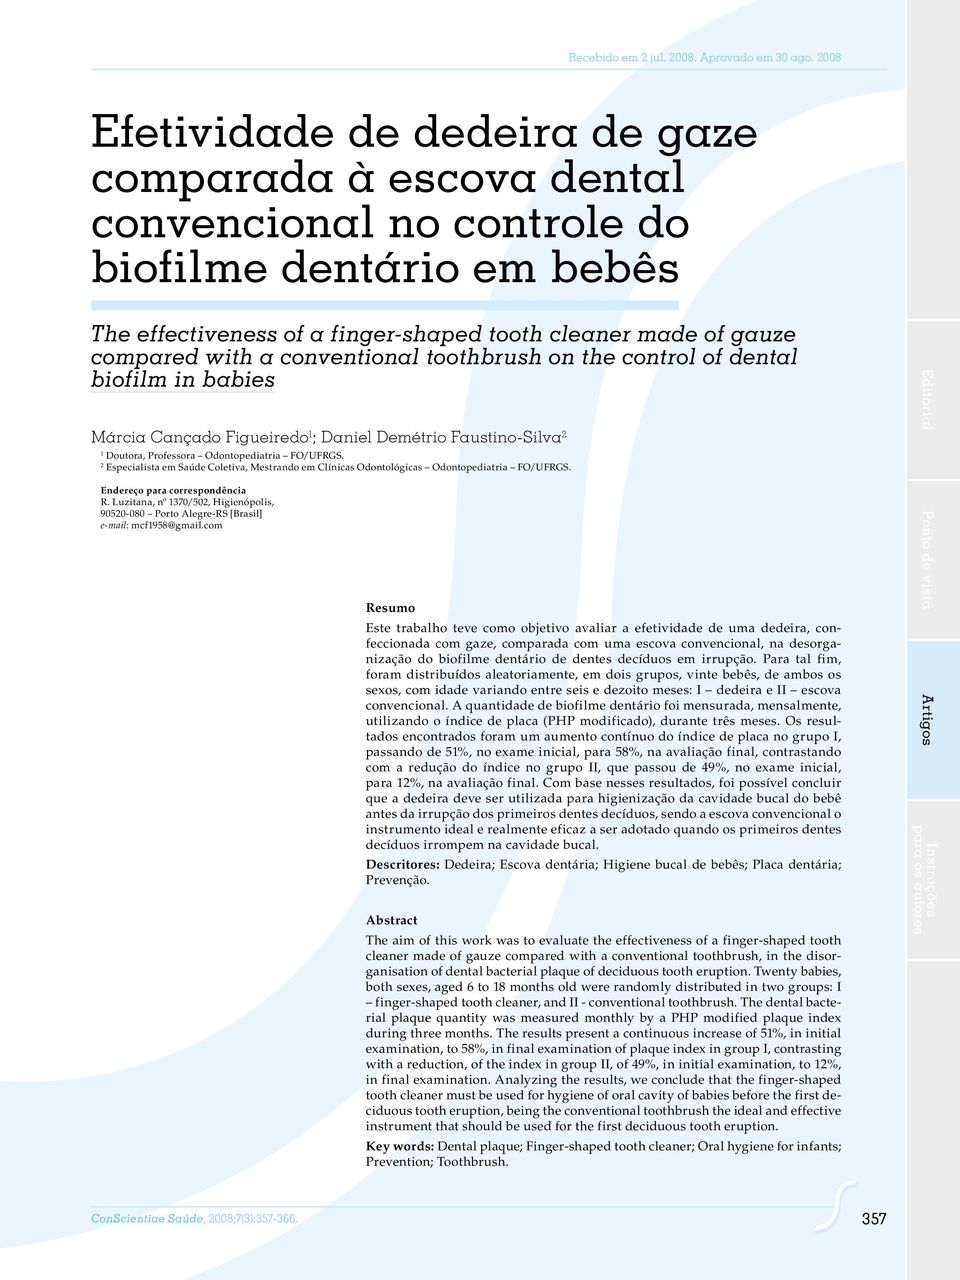 conventional toothbrush on the control of dental biofilm in babies Márcia Cançado Figueiredo 1 ; Daniel Demétrio Faustino-Silva 2 1 Doutora, Professora Odontopediatria FO/UFRGS.